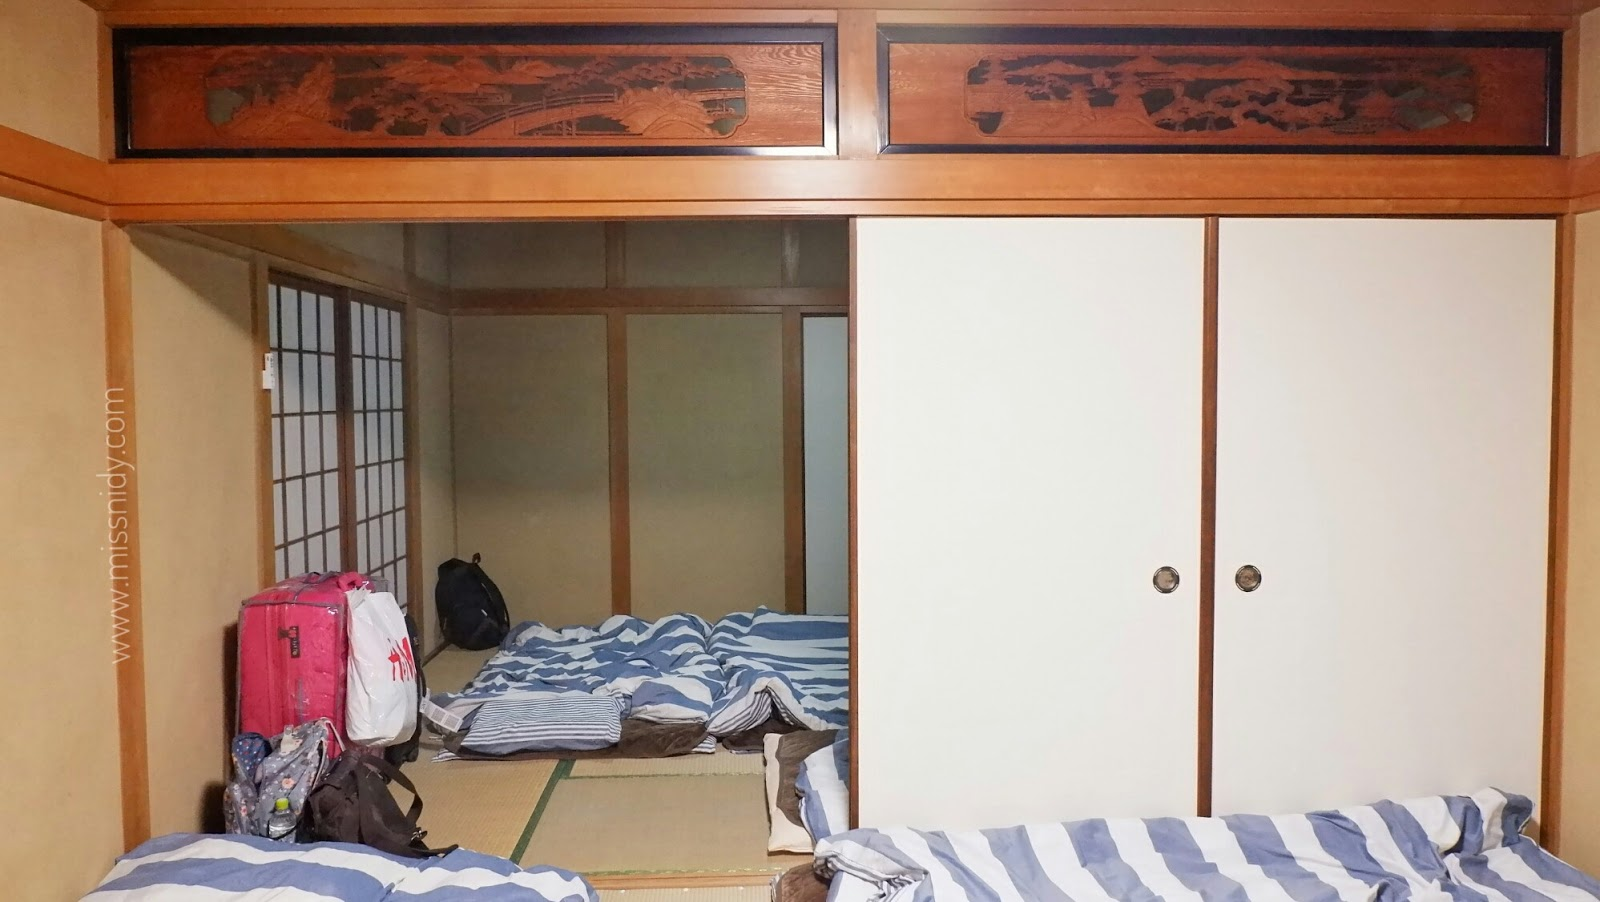 airbnb review in osaka japan